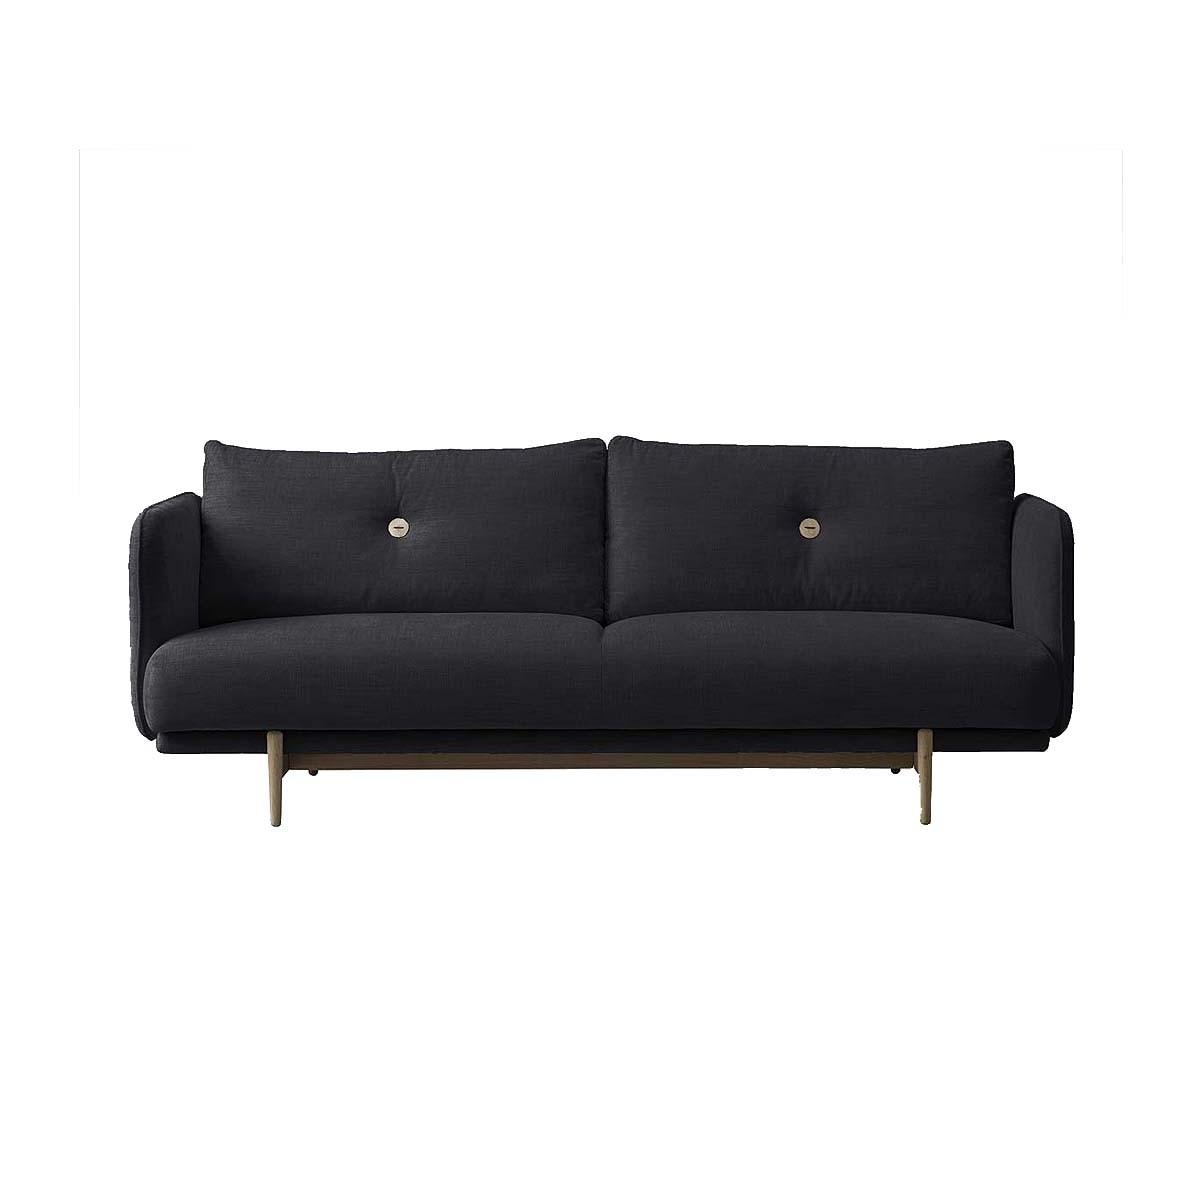 Life Interiors – Hold 3 Seater Sofa (Charcoal) – Modern Sofas For Intended For Modern 3 Seater Sofas (Image 12 of 20)